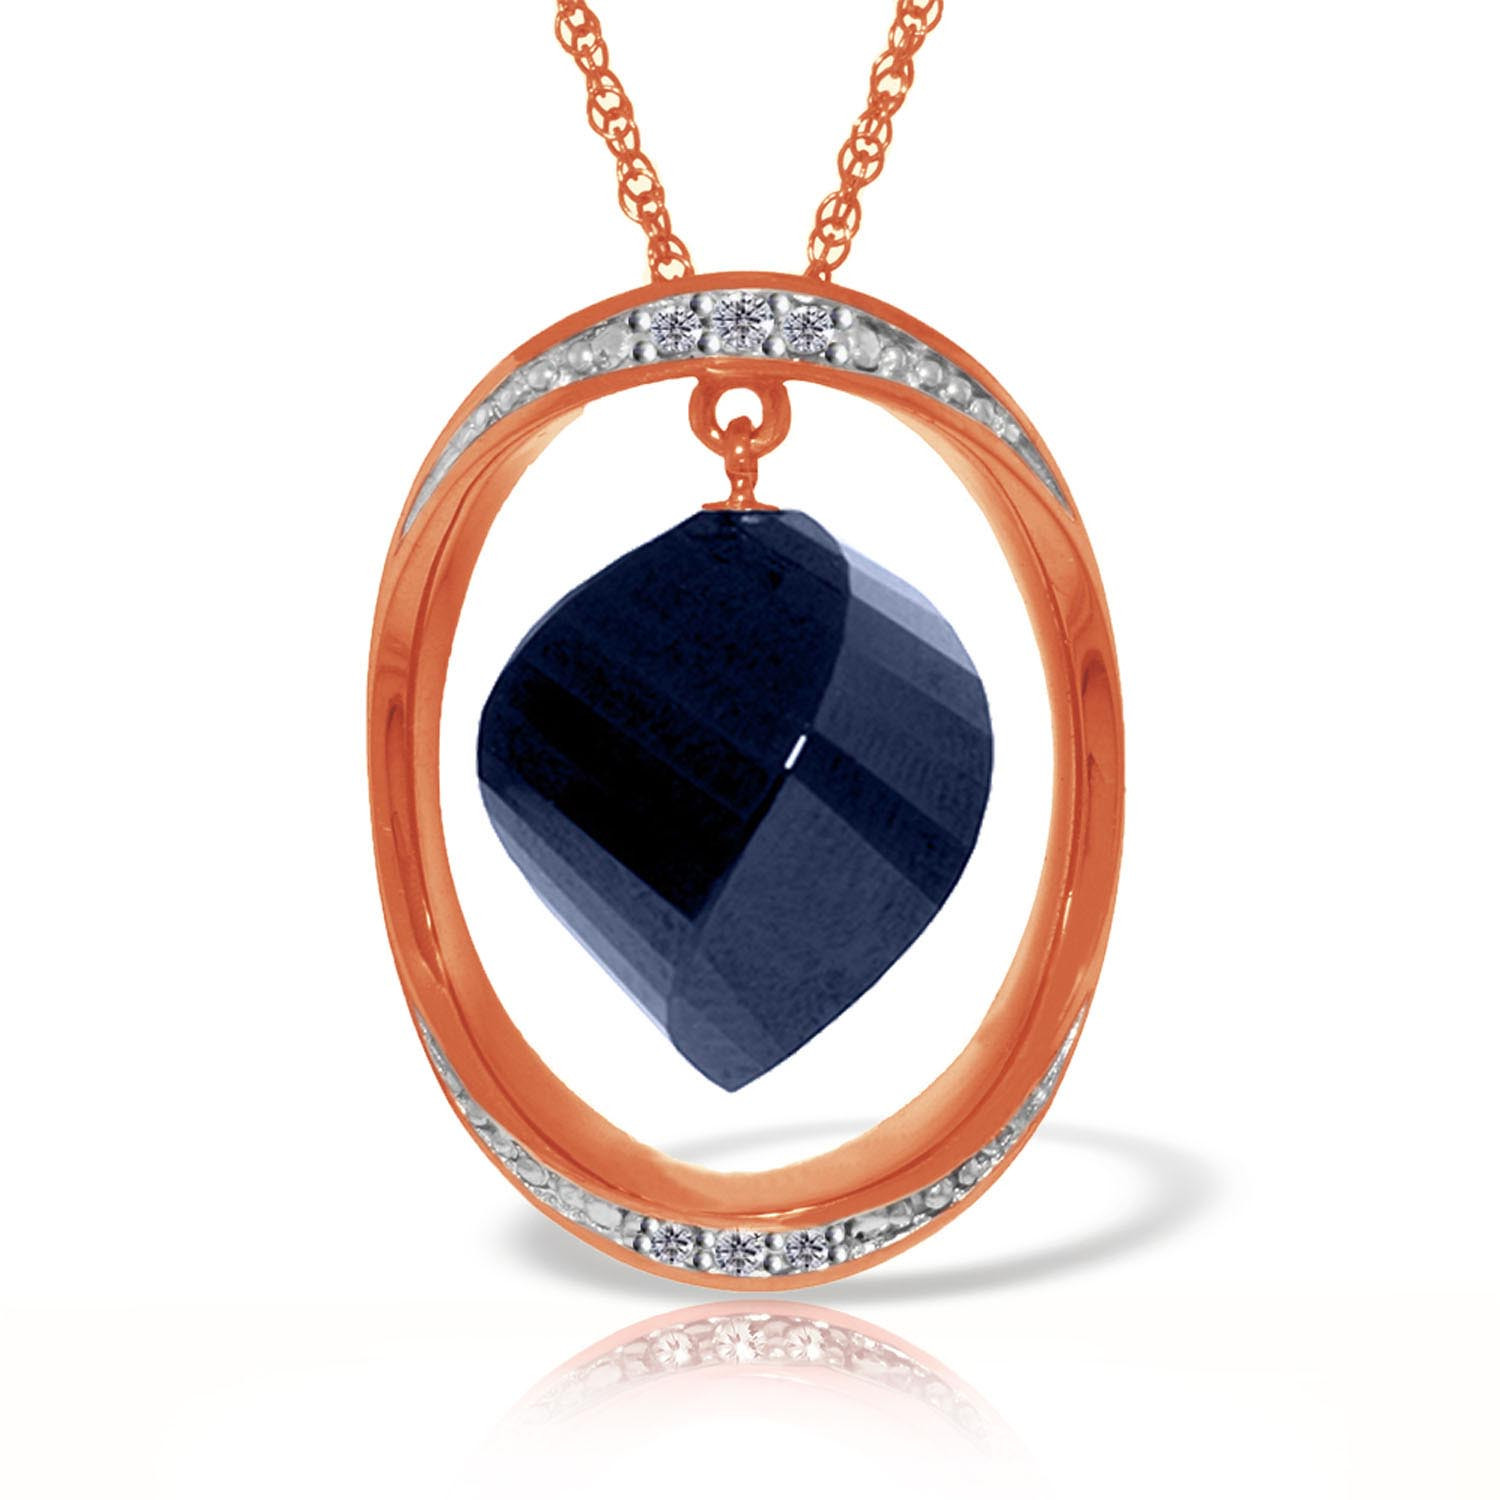 Sapphire & Diamond Pendant Necklace in 9ct Rose Gold